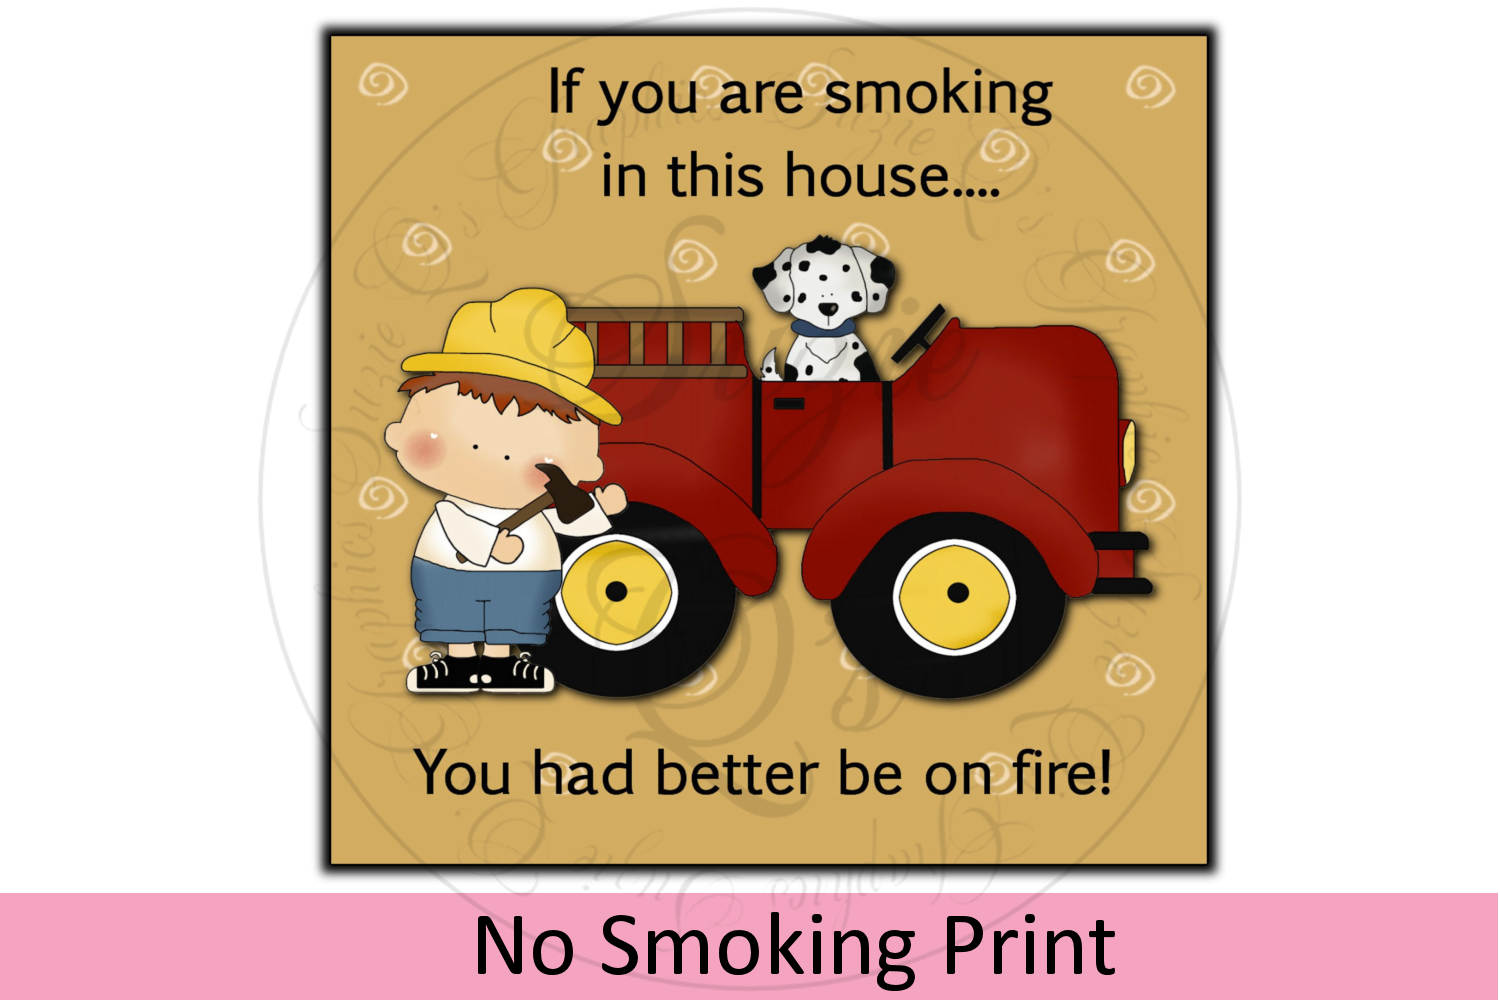 No Smoking Print example image 1